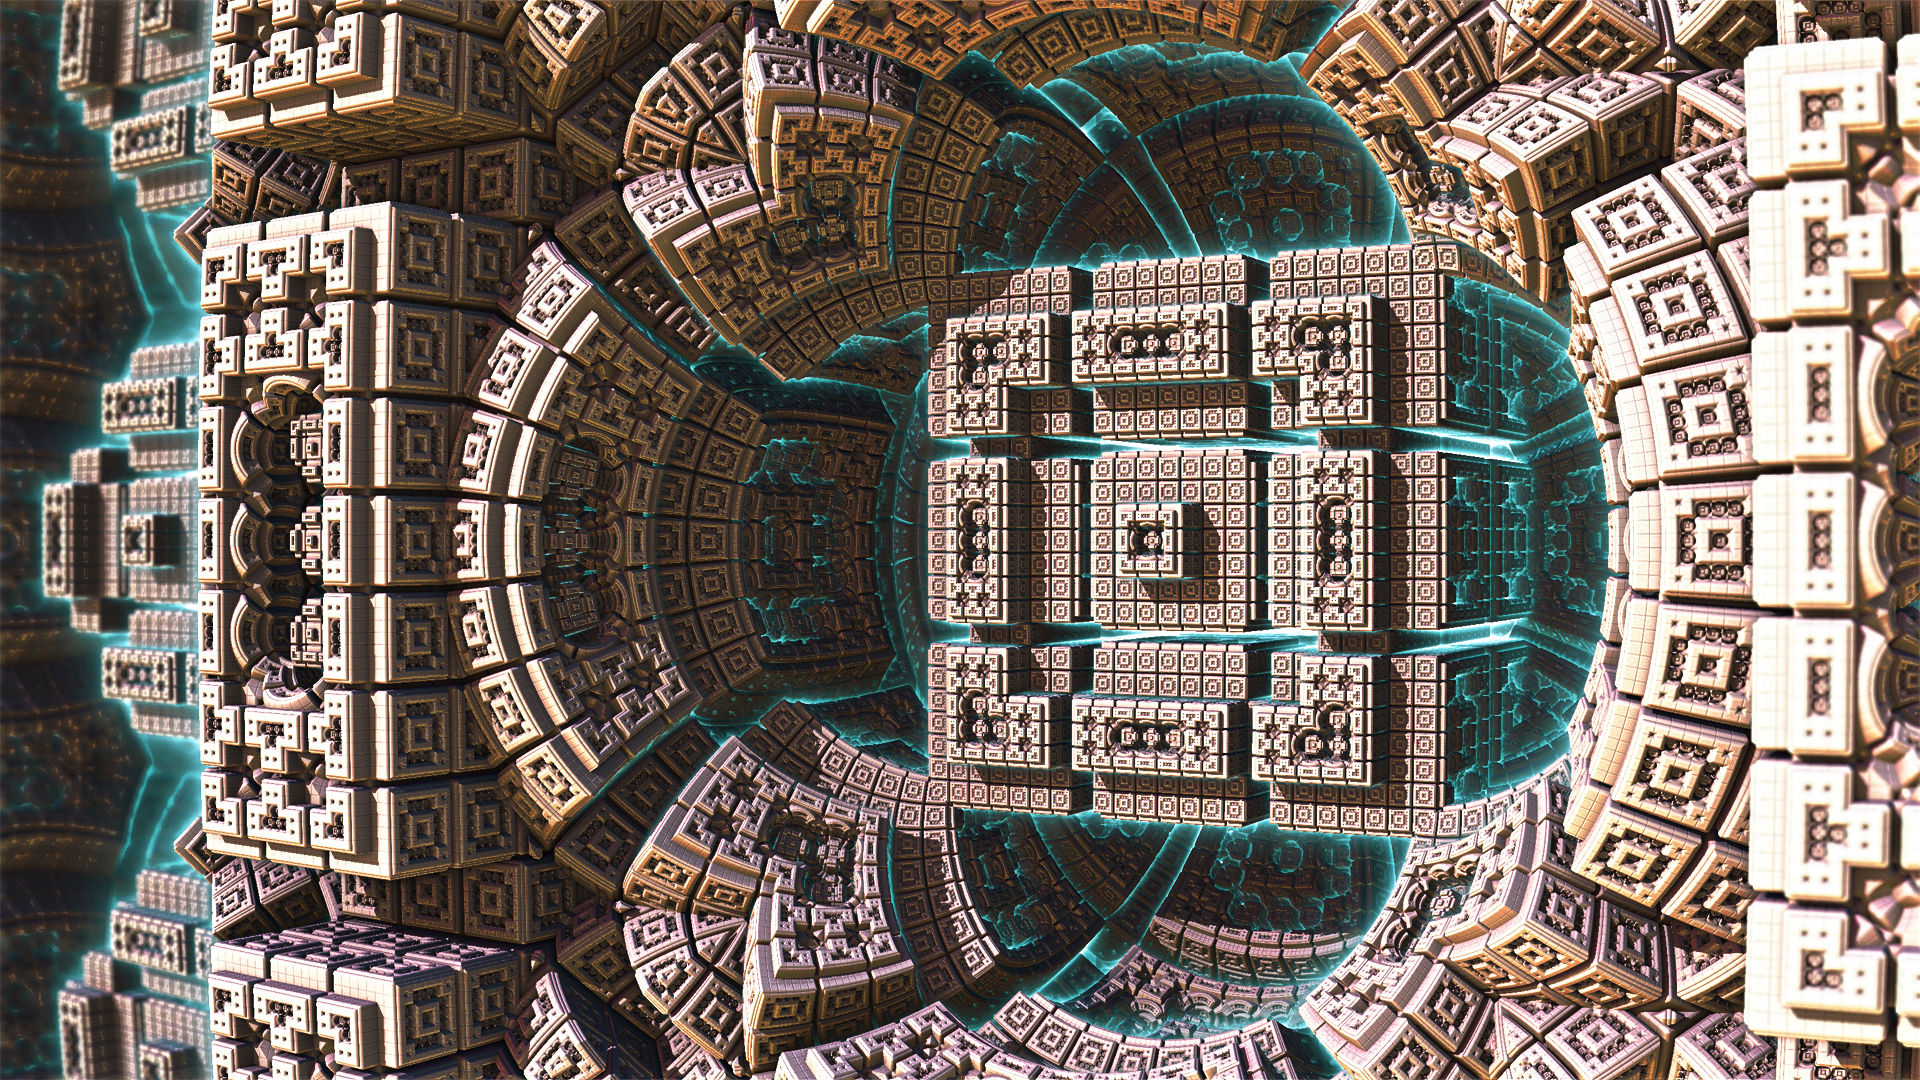 tesseract_by_sependrios-d6pnjfv-1506174545.jpg